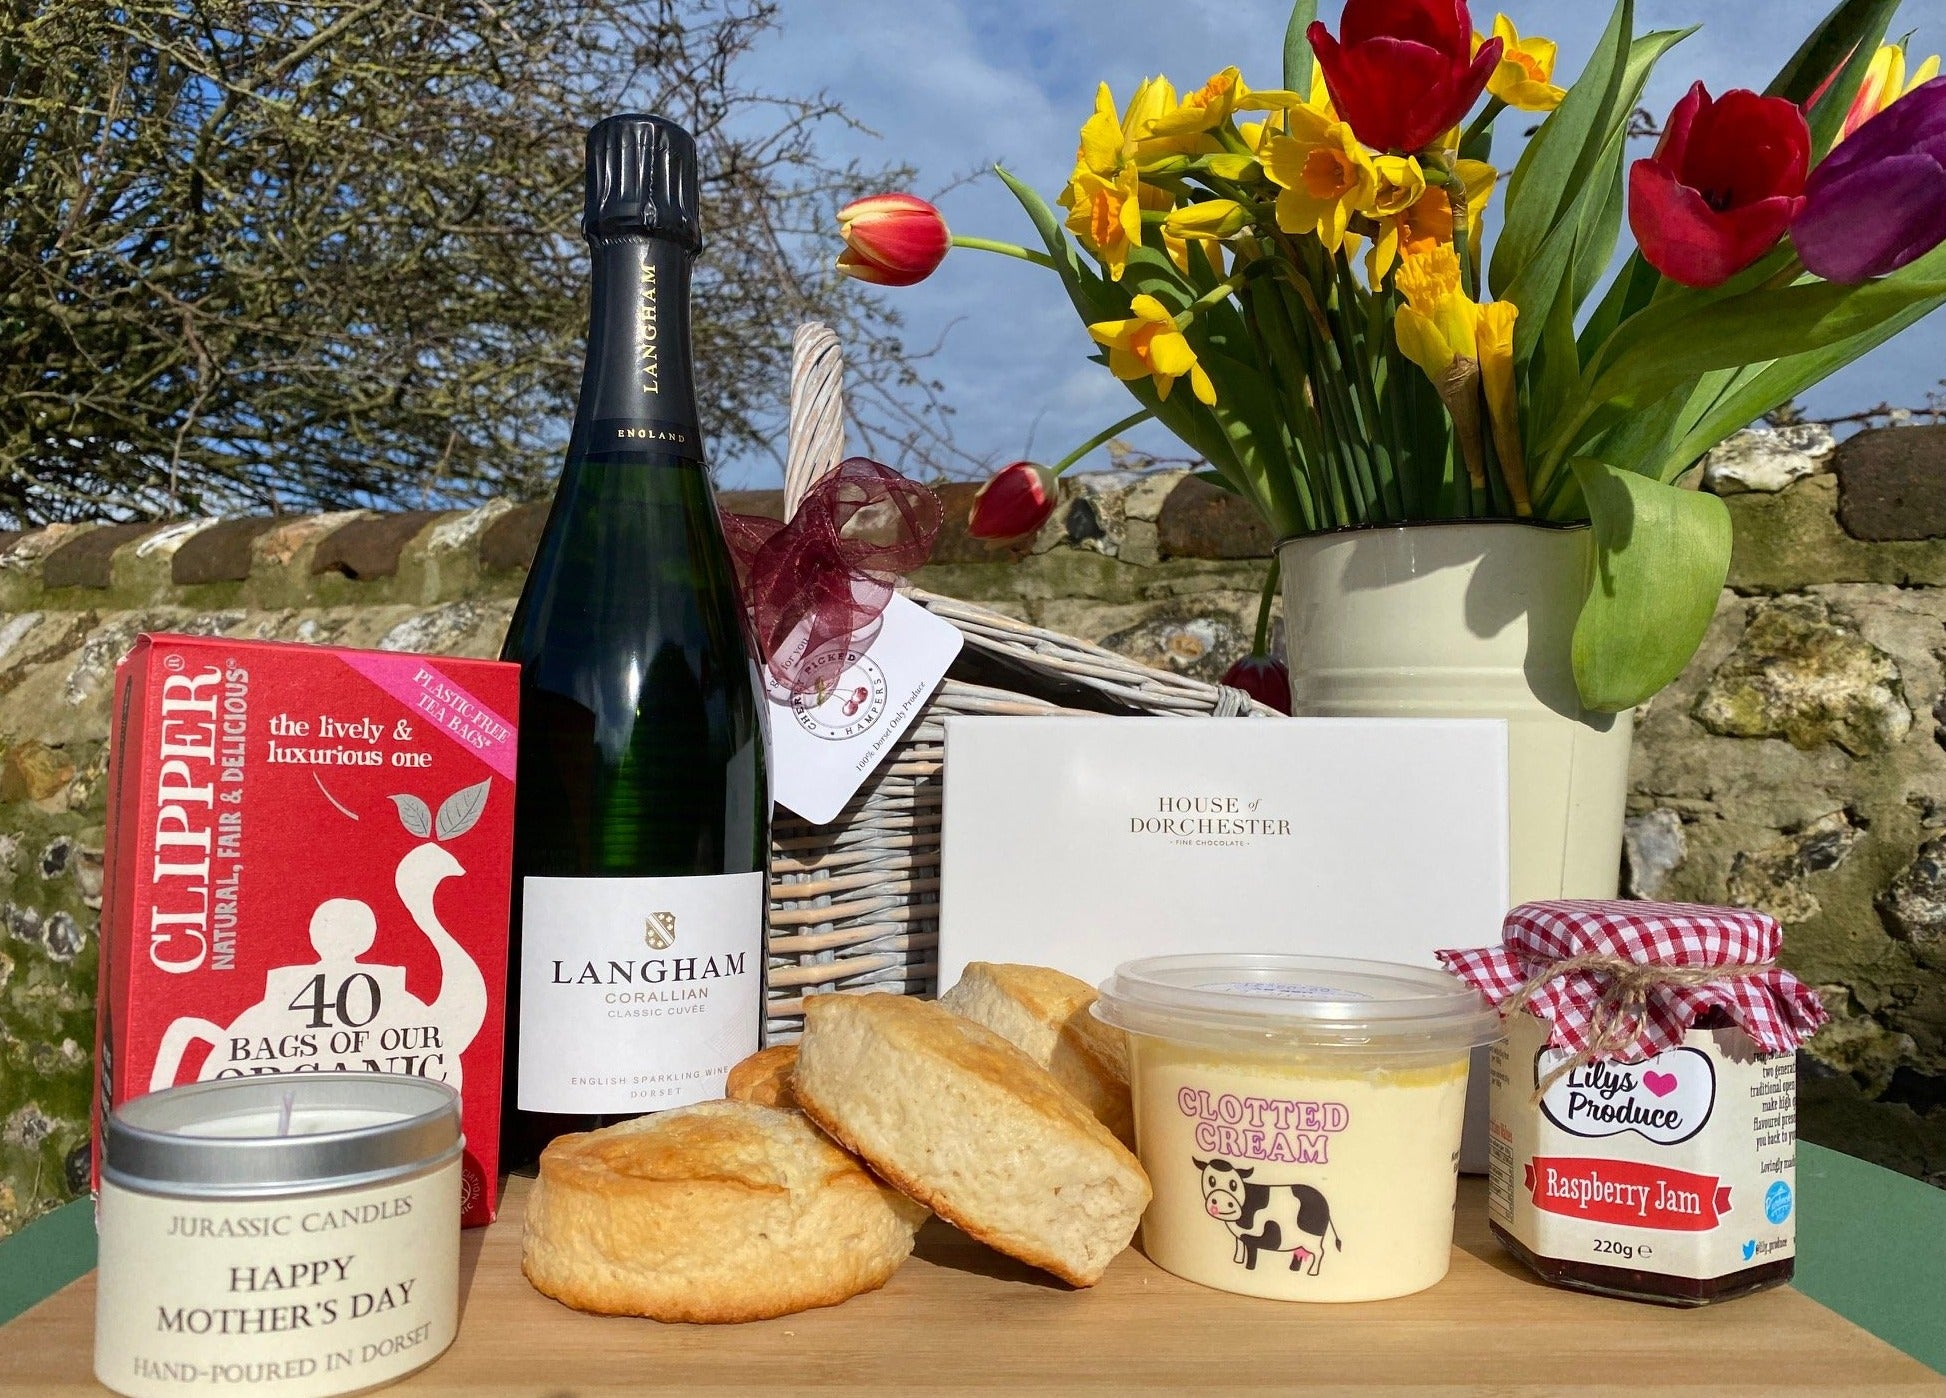 The Ultimate Cream Tea & Bubbles Dorset Gift Hamper